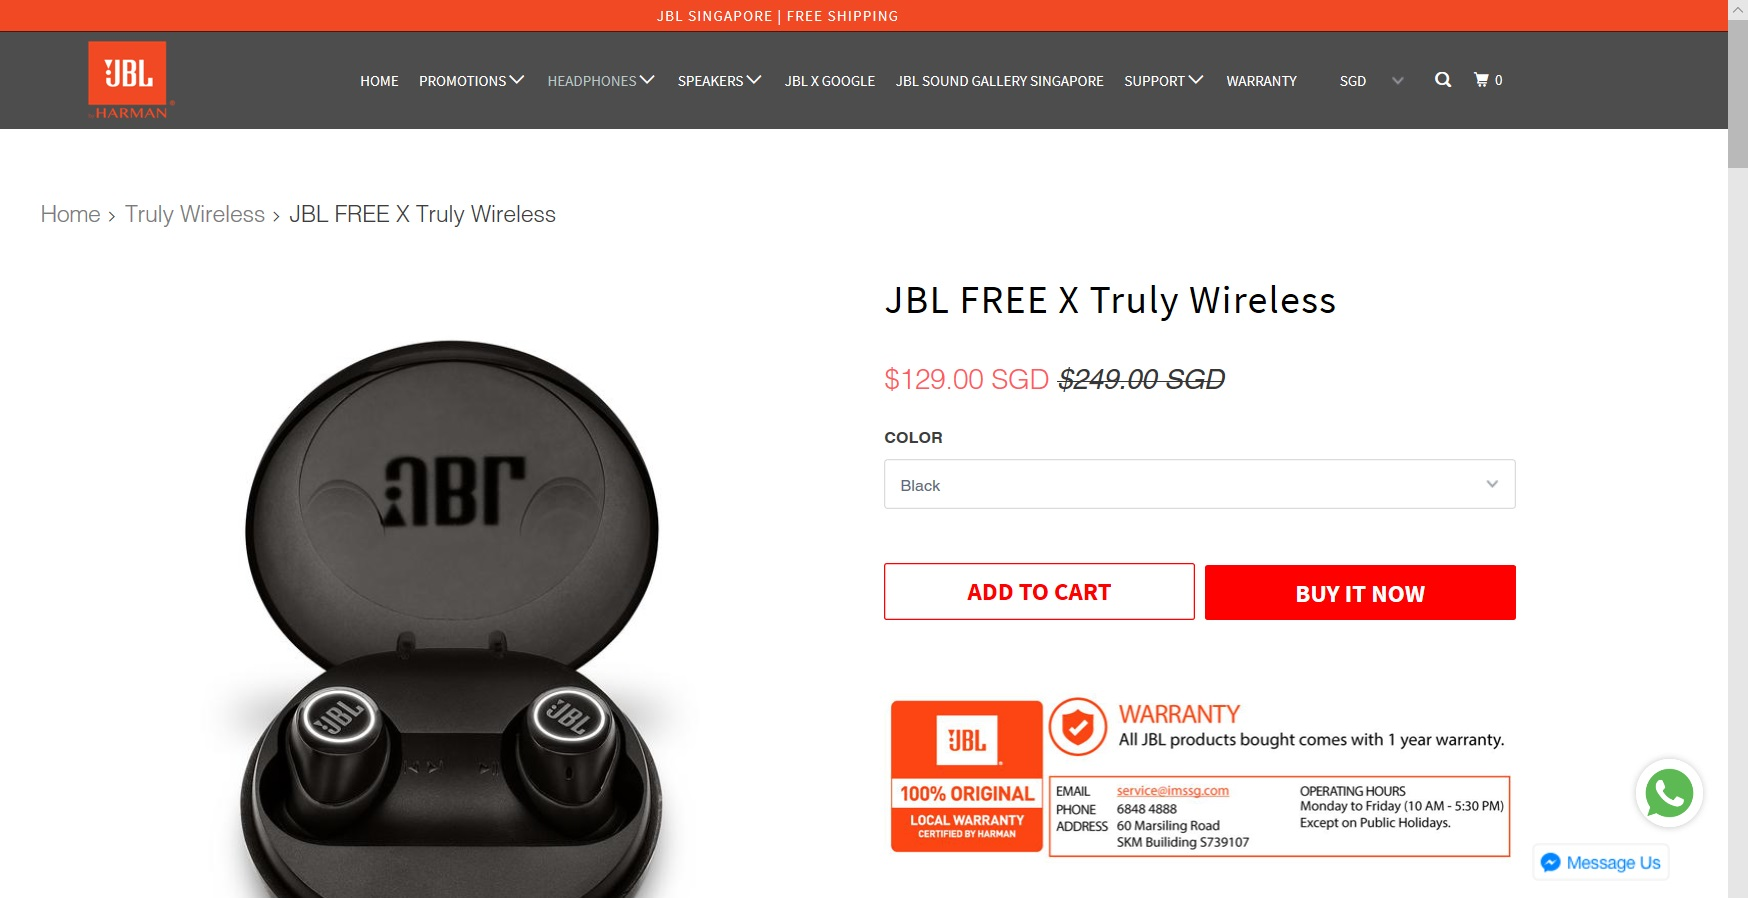 Product description of JBL headphones.